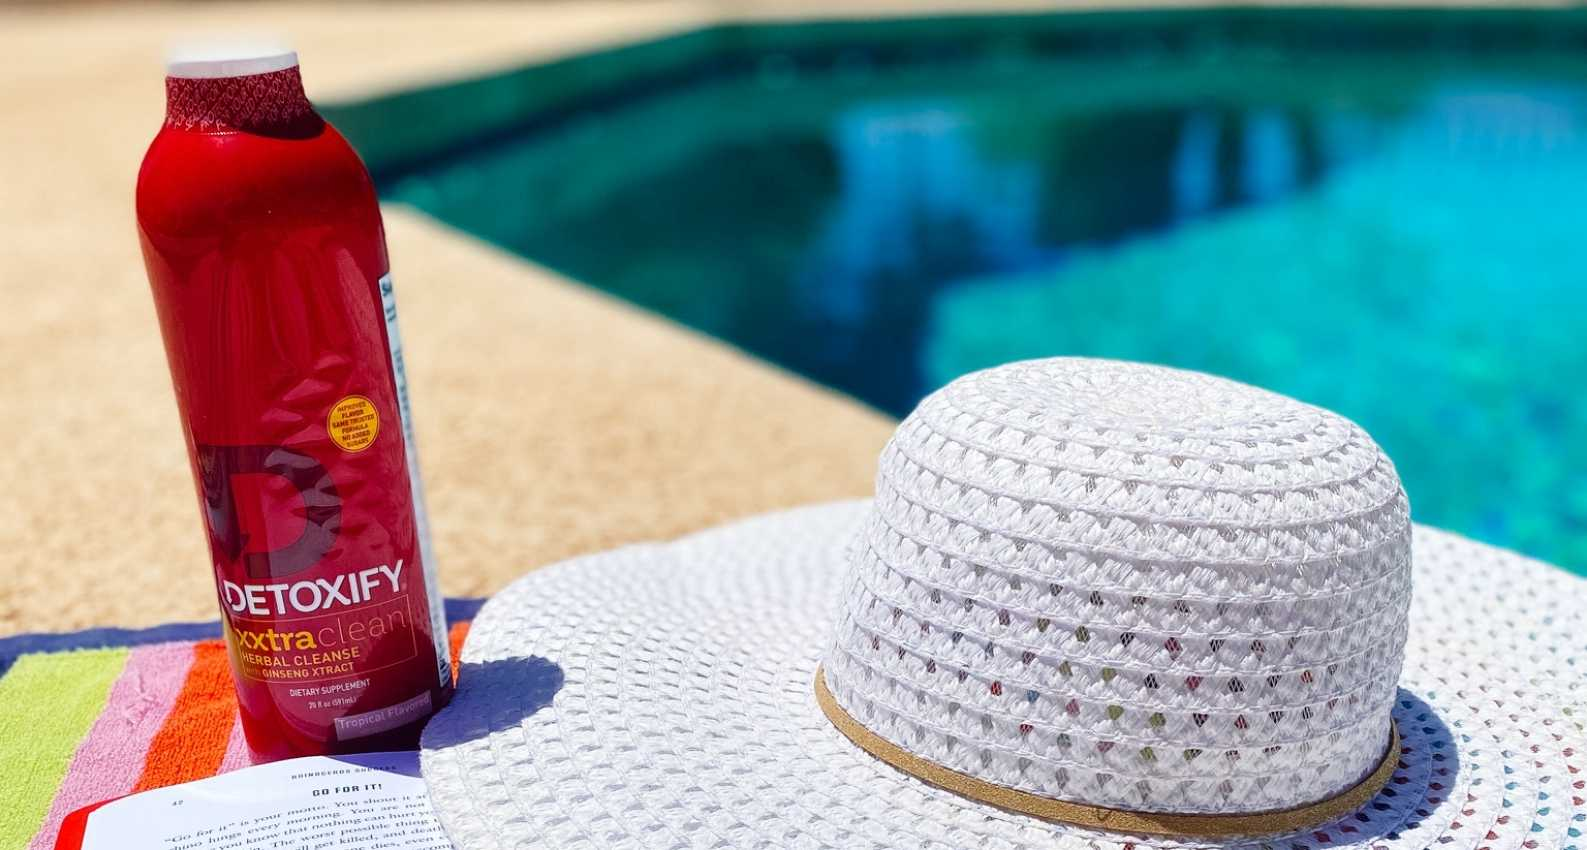 Detoxify XXtra Clean support healthy, sustained energy while reducing feelings of stress and improving mood -- for a very good summer.